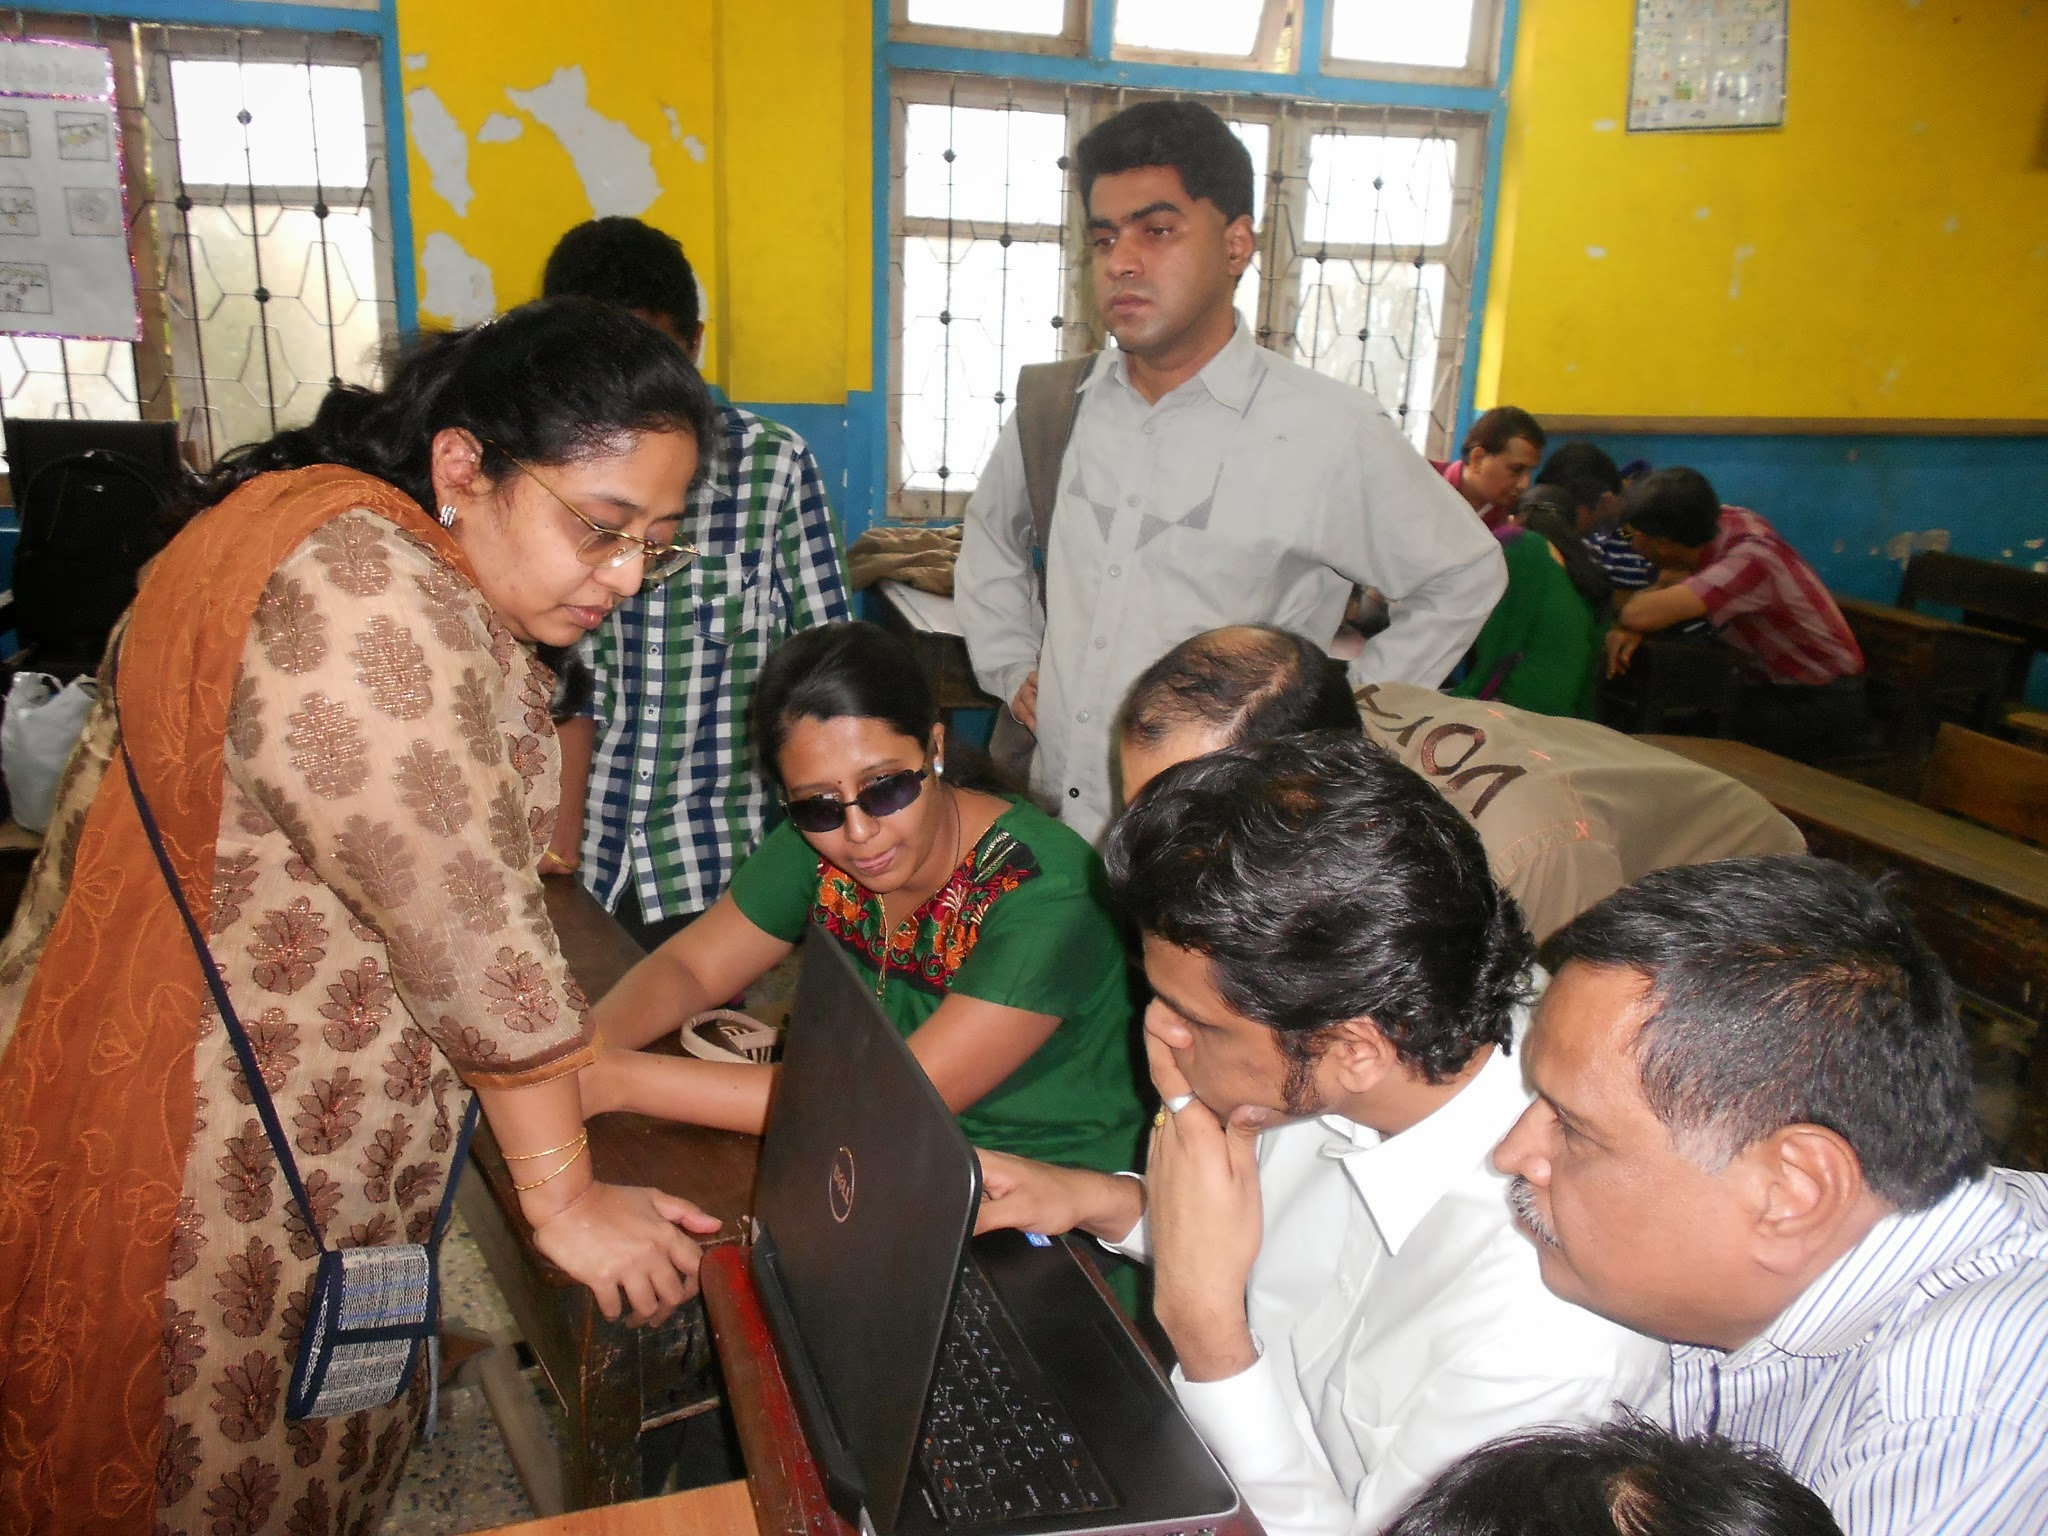 A picture where sushmeetha bubna, founder of Voice vision is giving instruction to participants